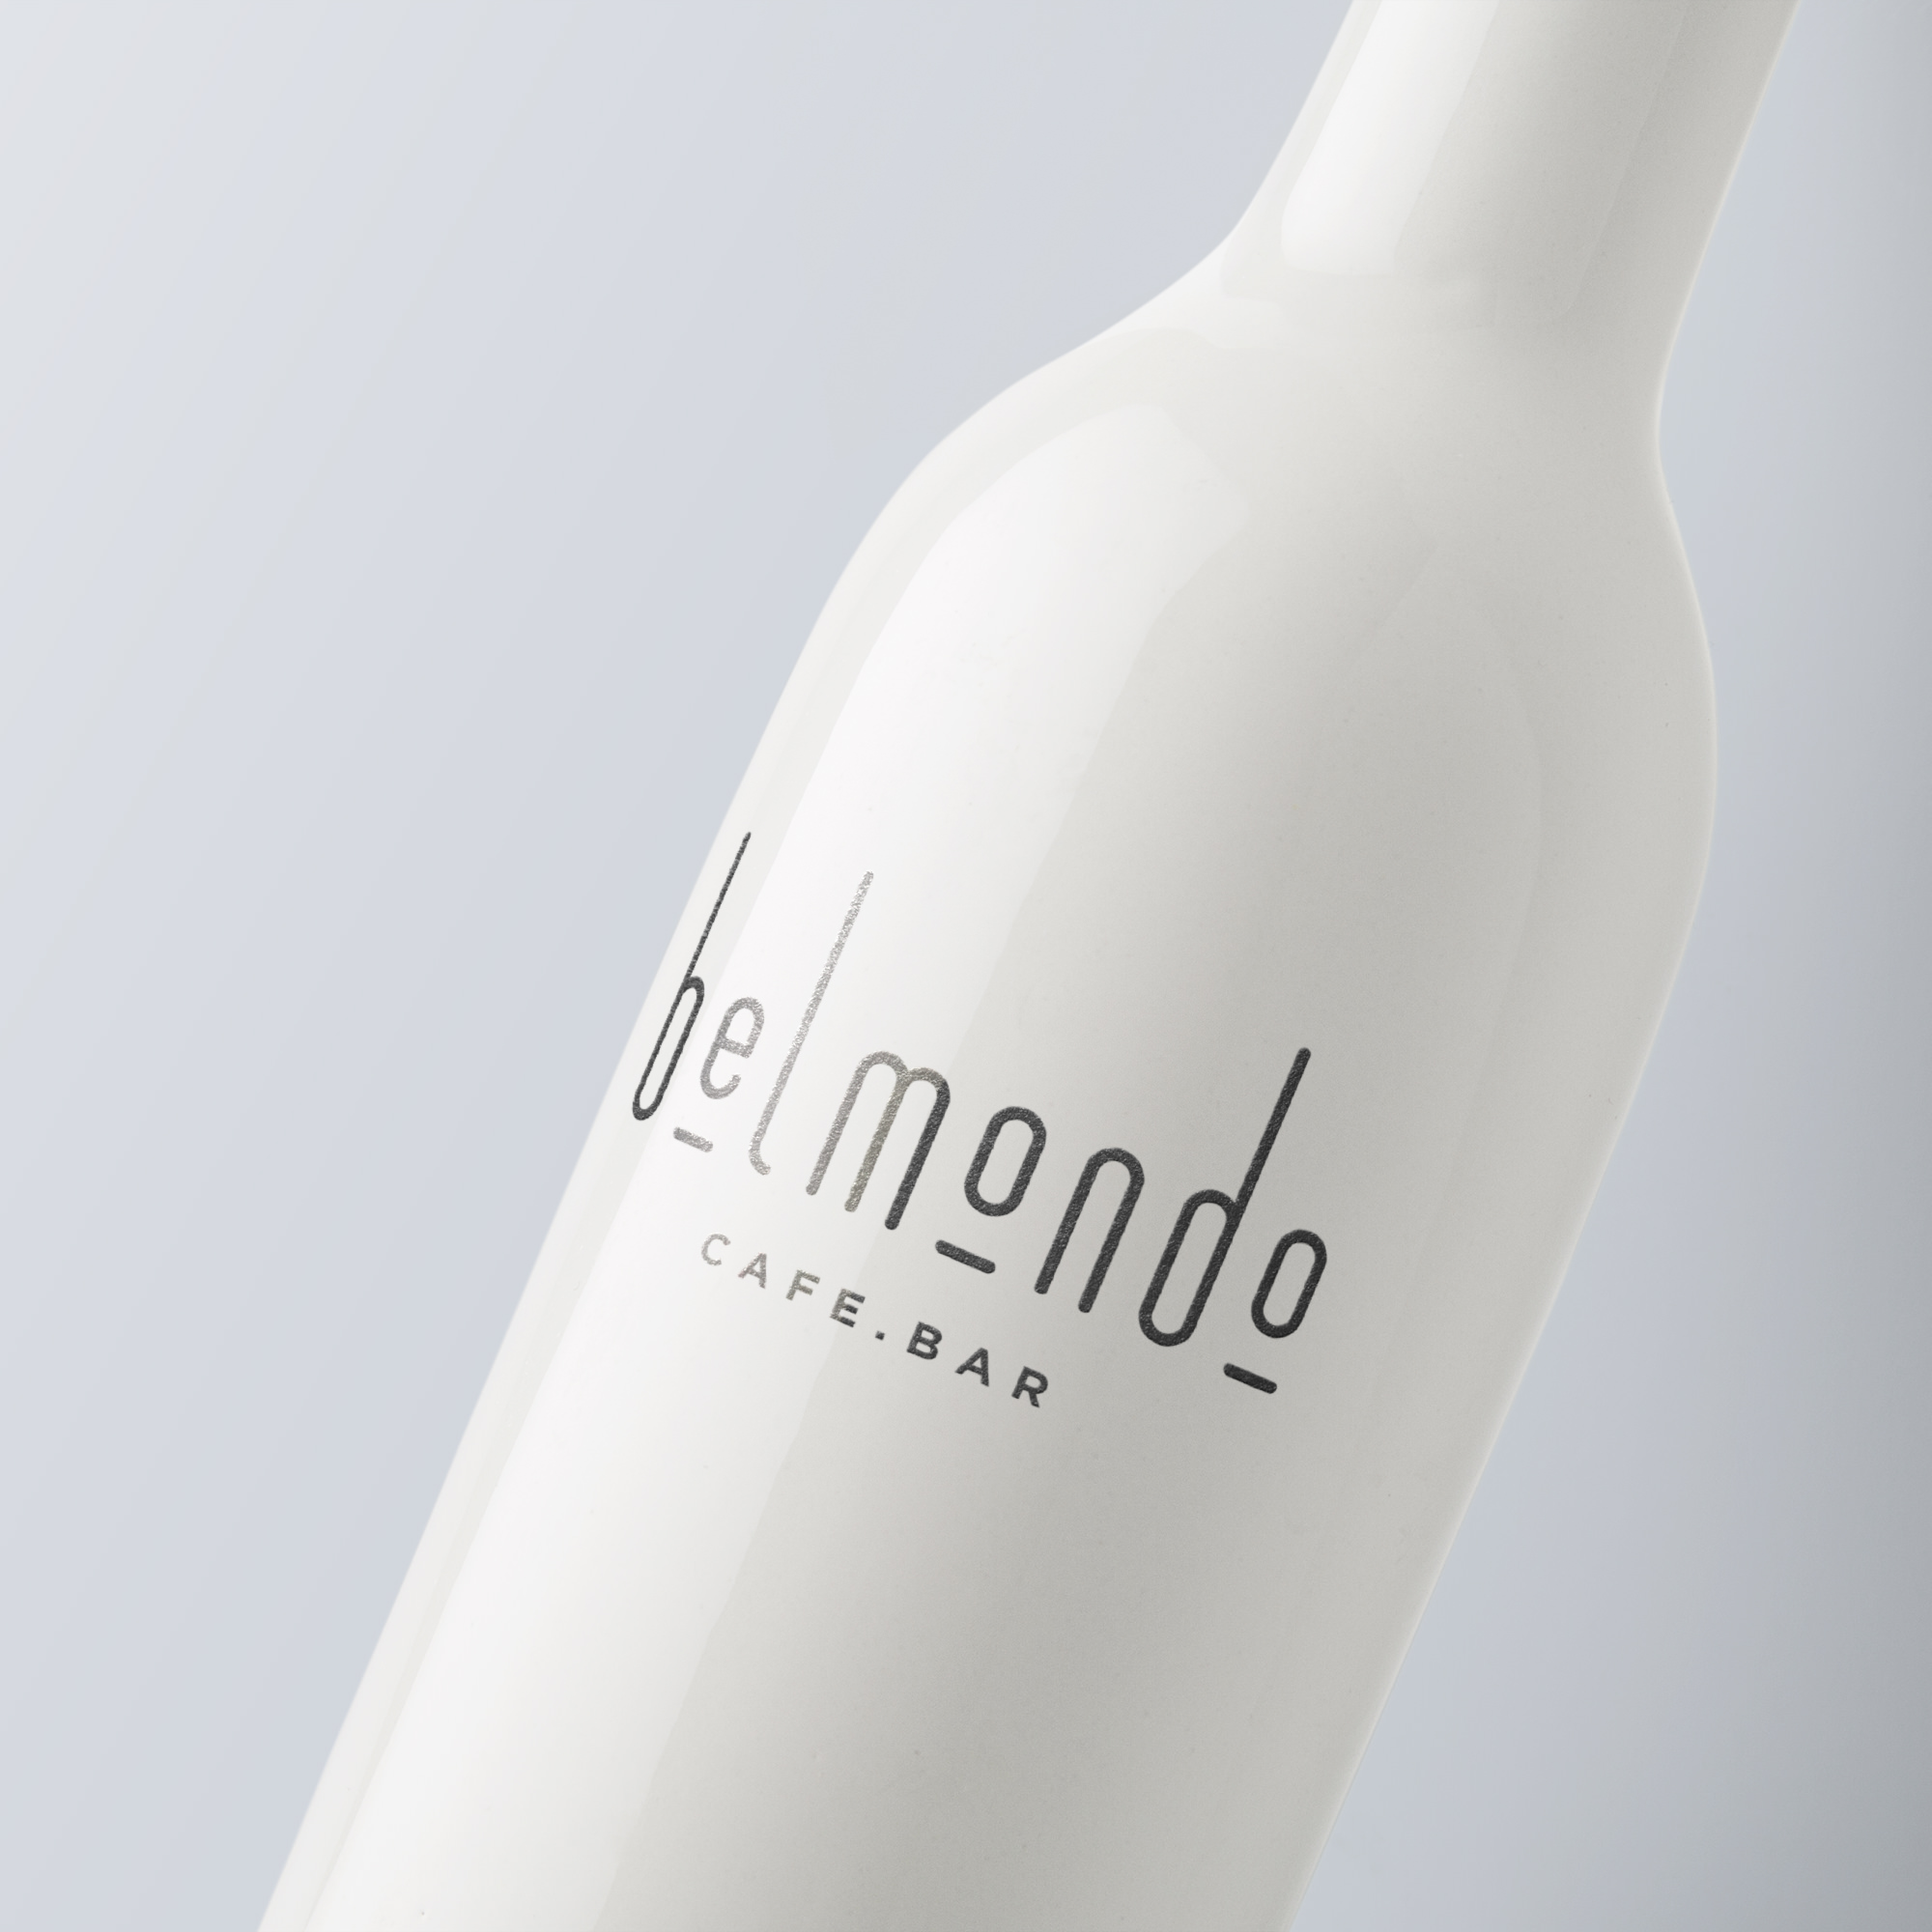 belmondo-bottle